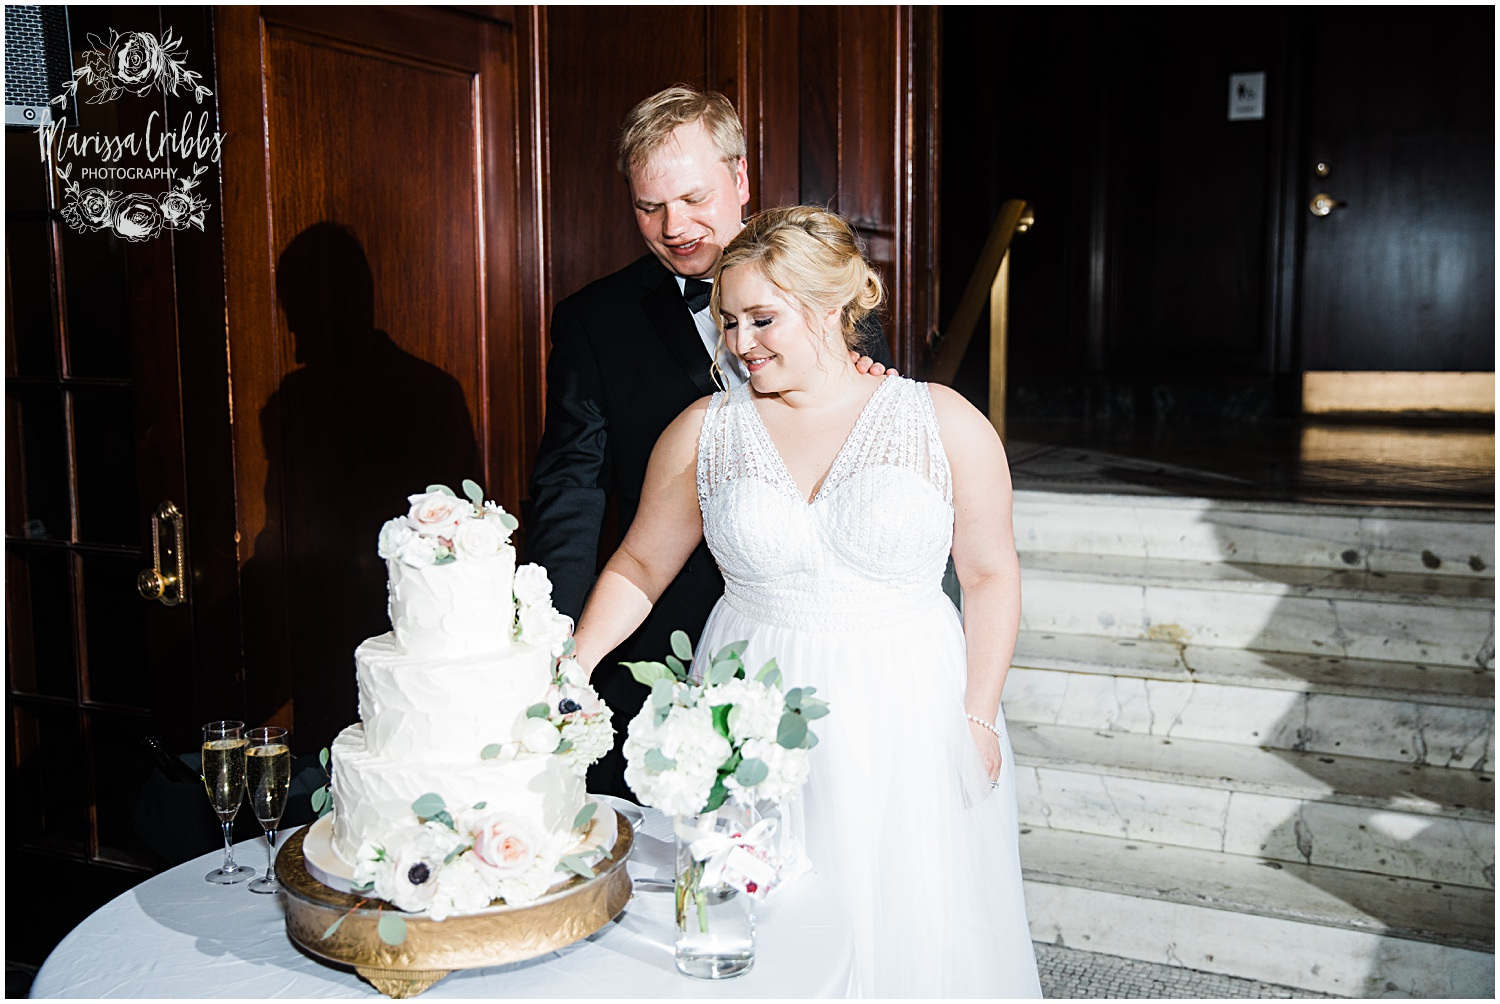 RACHEL & SCOTT MARRIED | MARISSA CRIBBS PHOTOGRAPHY_7725.jpg